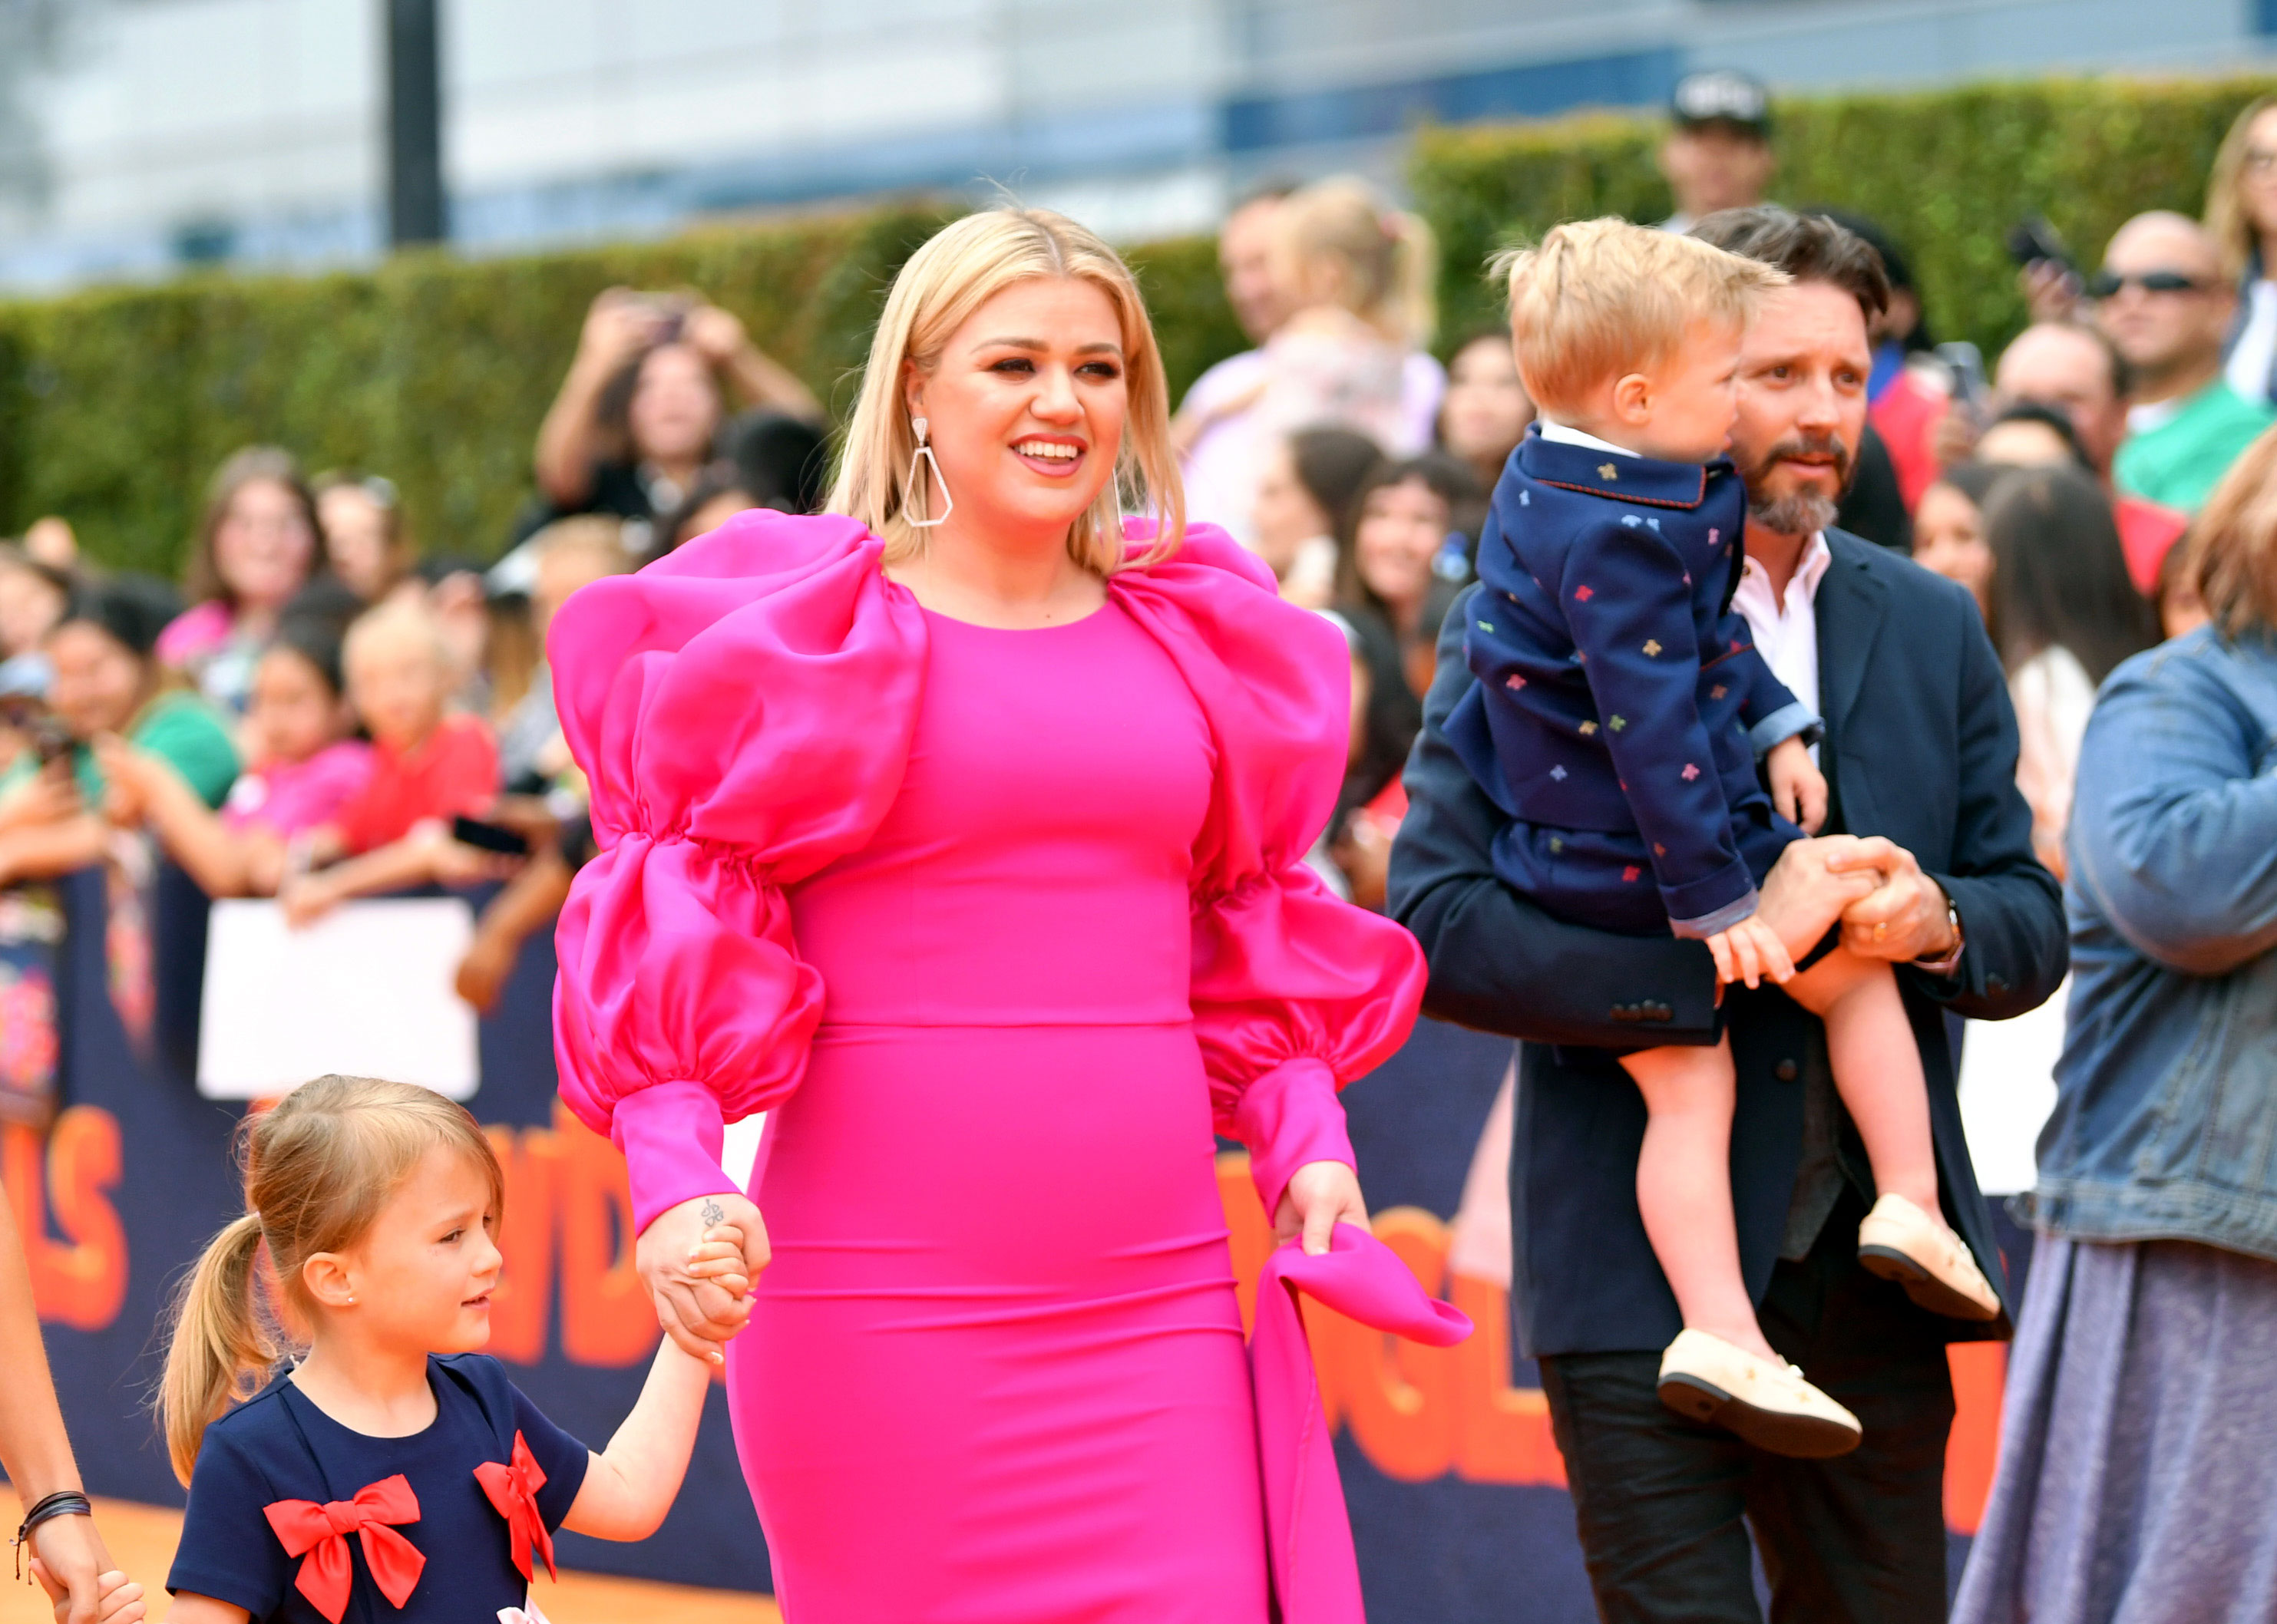 Kelly Clarkson Brings Her 4 Kids to the Premiere of Her